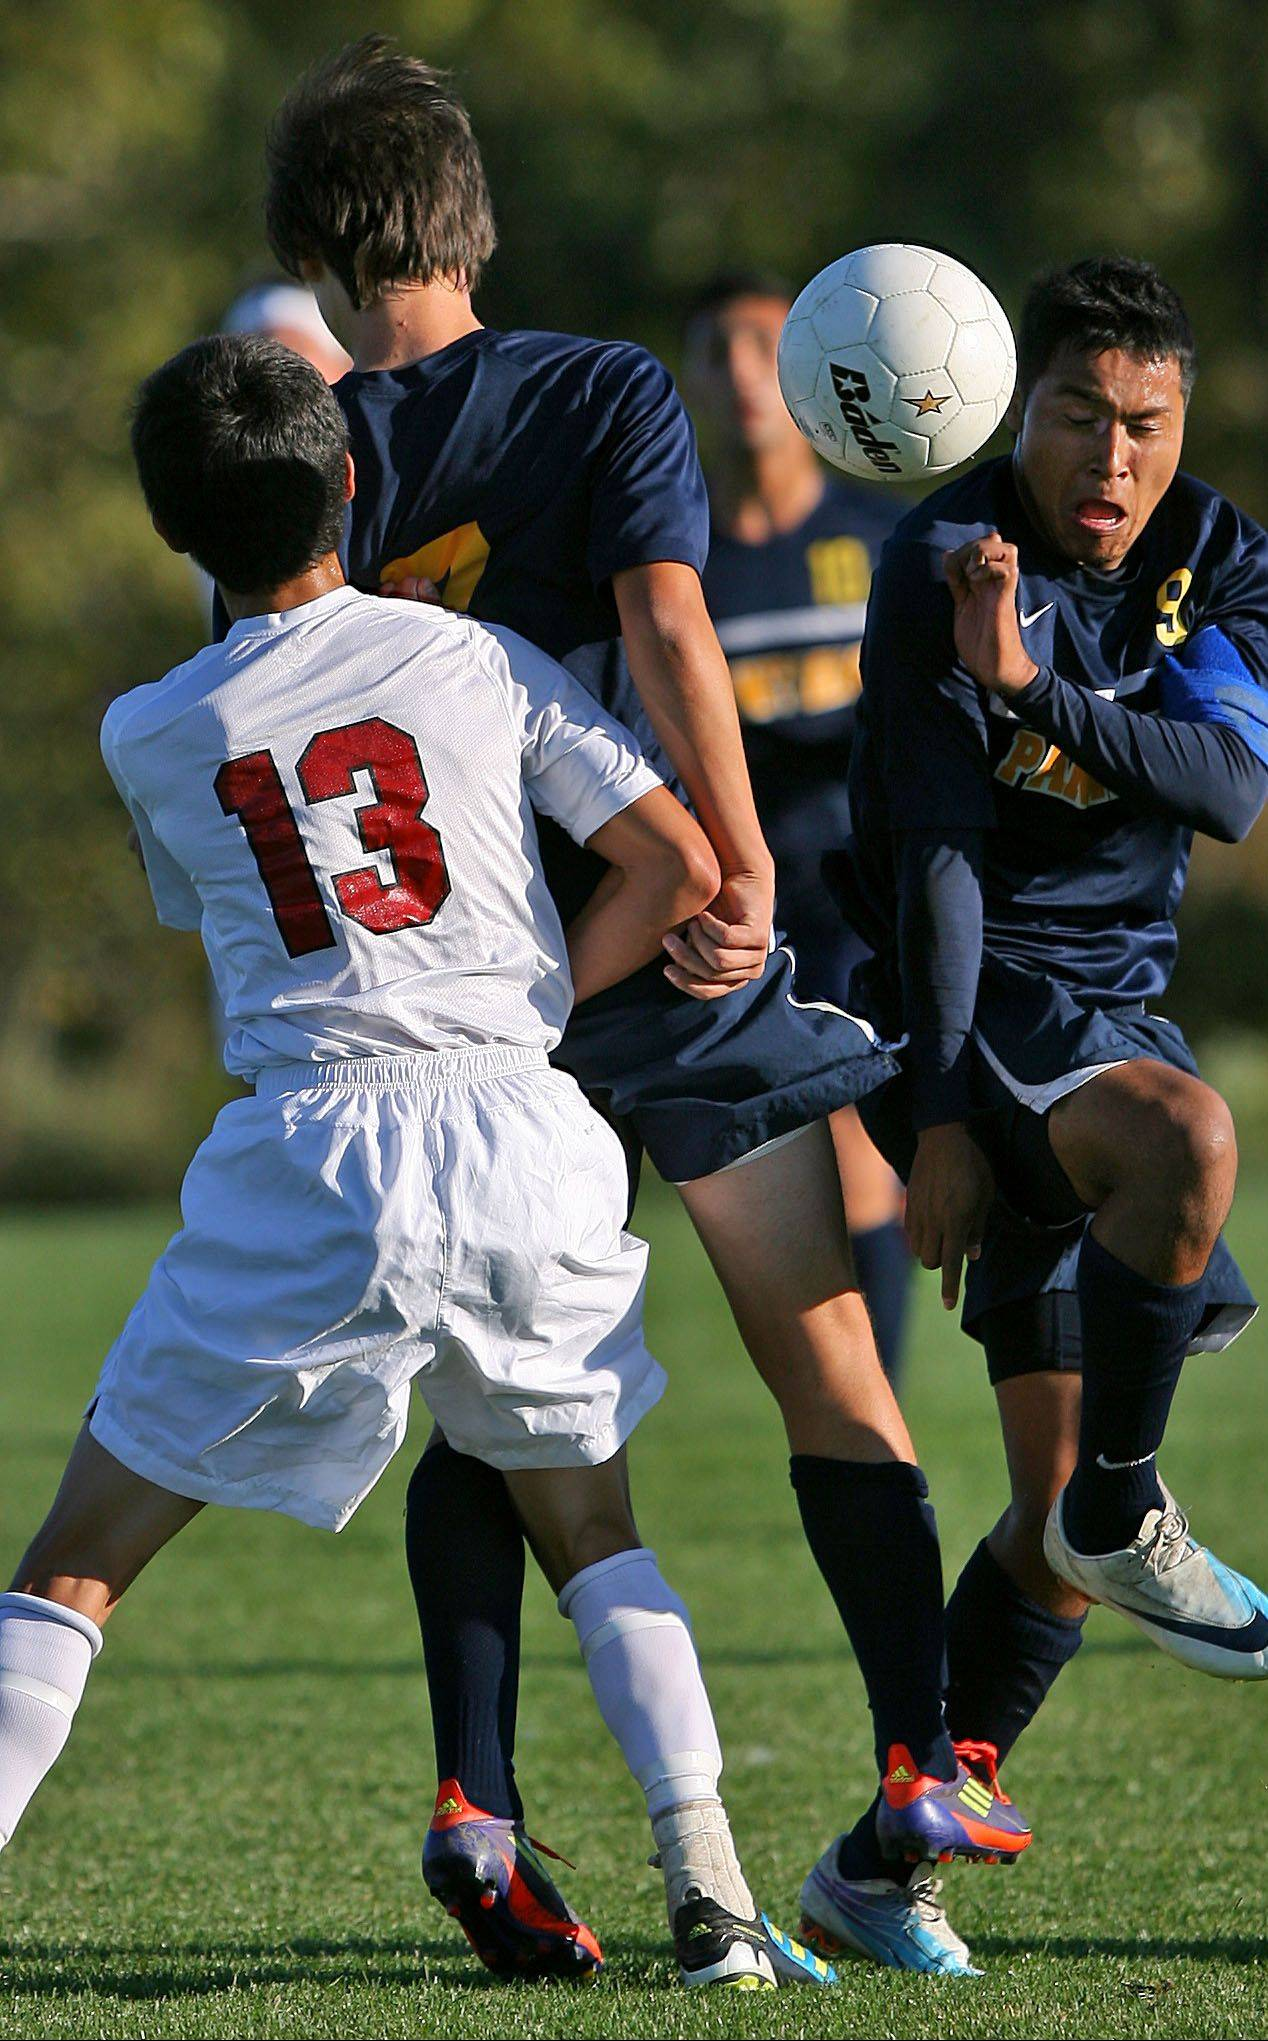 Antioch's Joshua Hallett, left, and Round Lake's Mauricio Salgado, center, and Jordi Rubio battle for a ball.